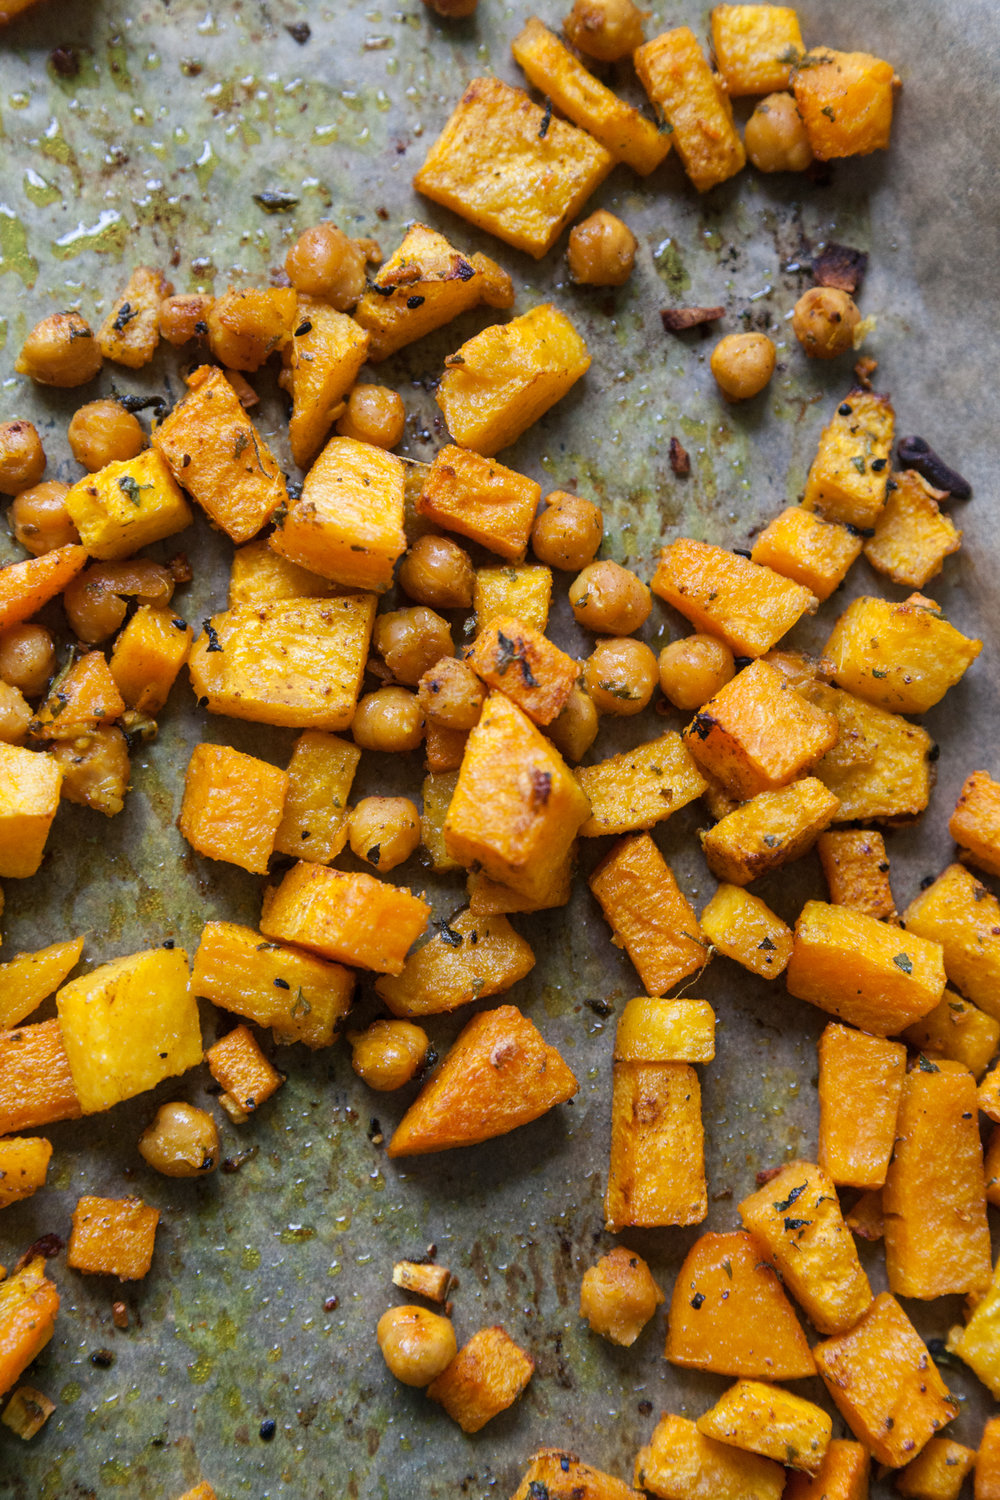 The butternut squash and chickpeas will cook up nicely within the oven and can also be added to the grain afterwards.